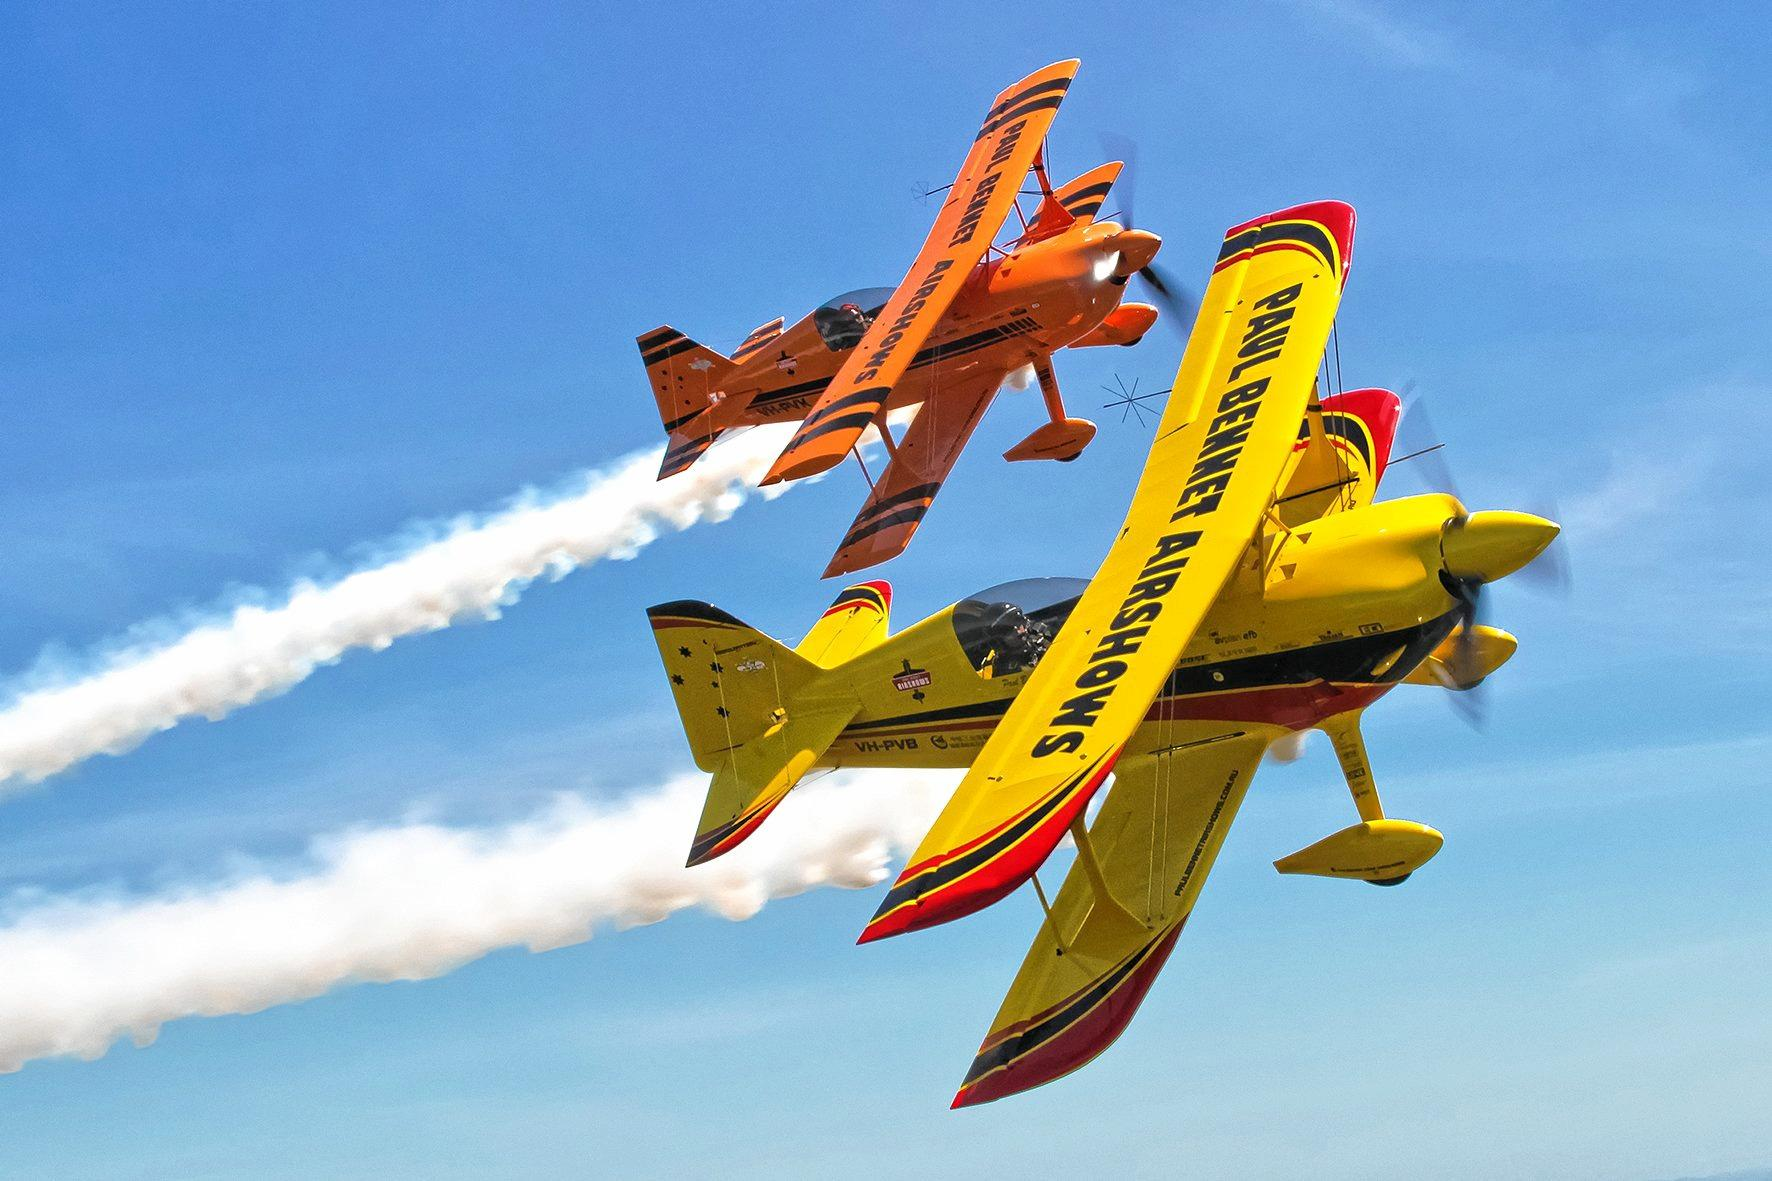 SKY'S THE LIMIT: Paul Bennet Airshows heads to the region this weekend